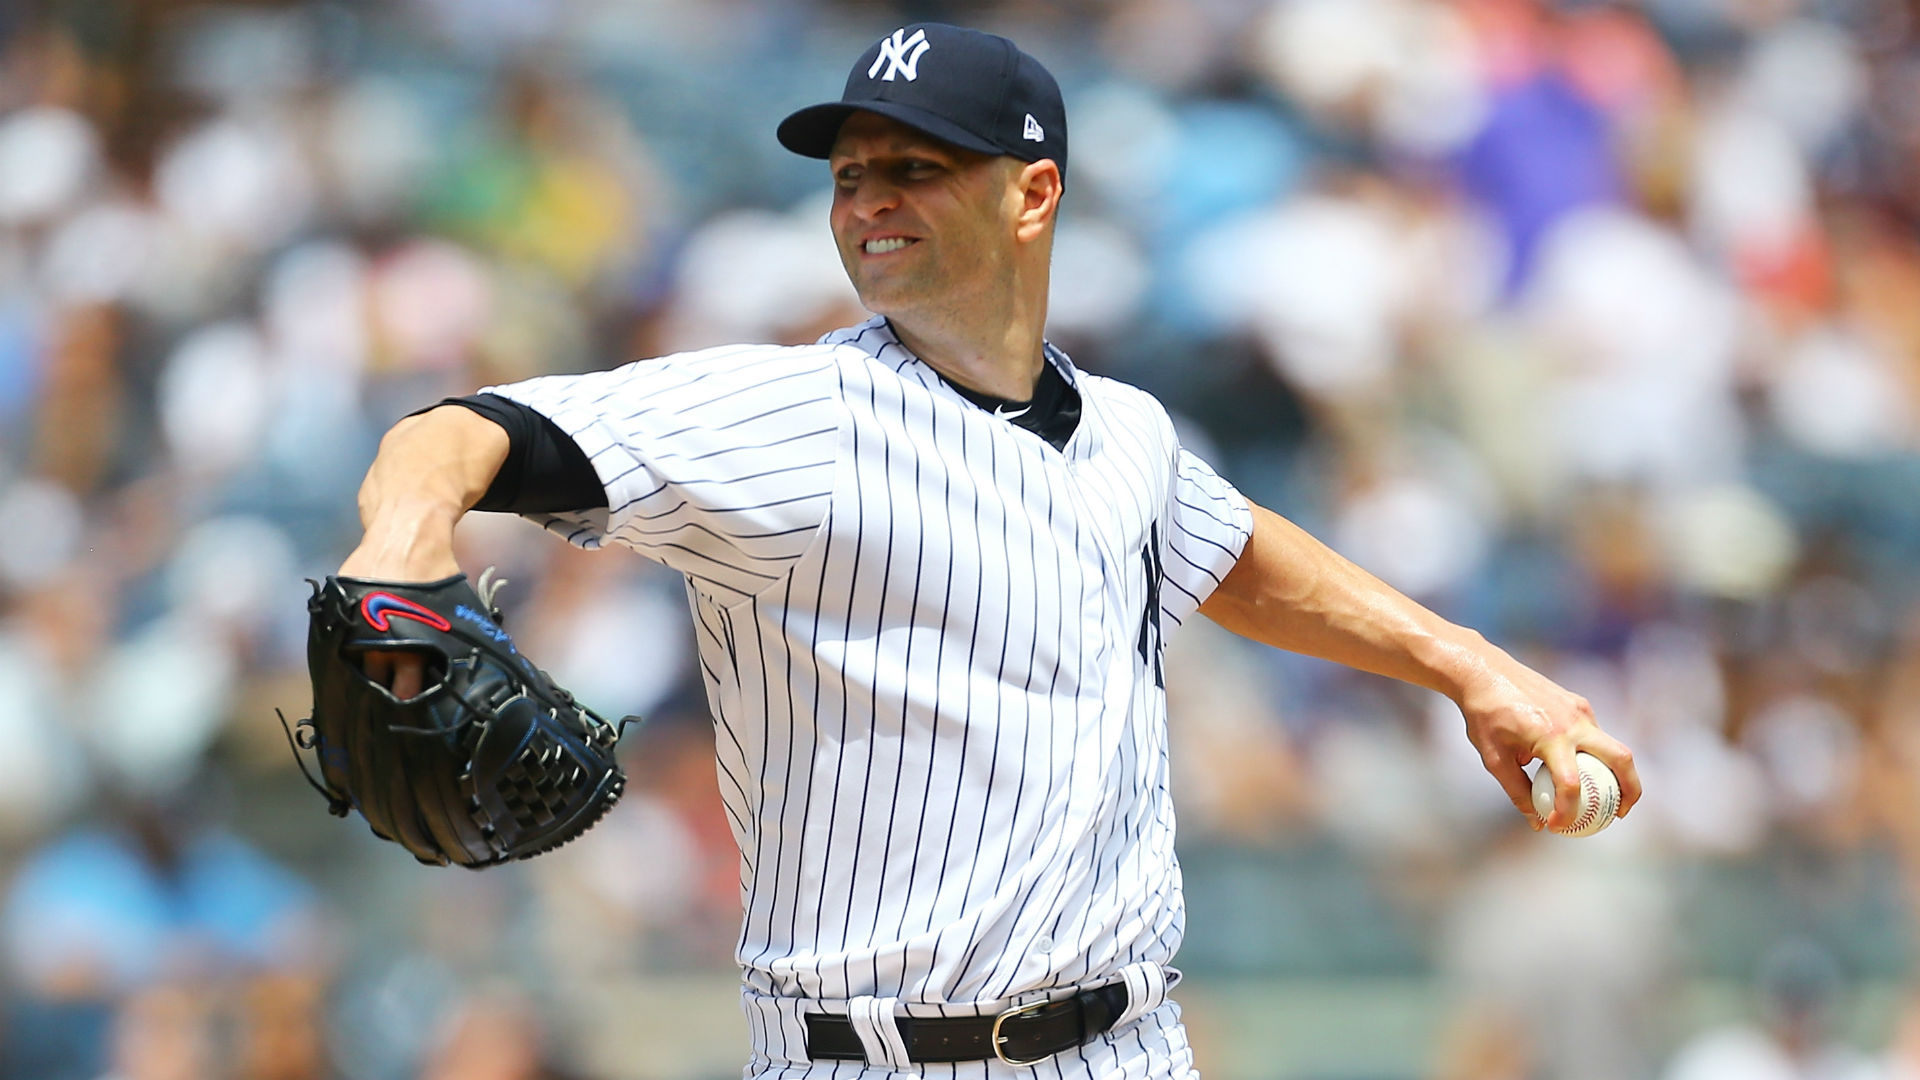 Yanks' Happ sent home with hand, foot and mouth disease